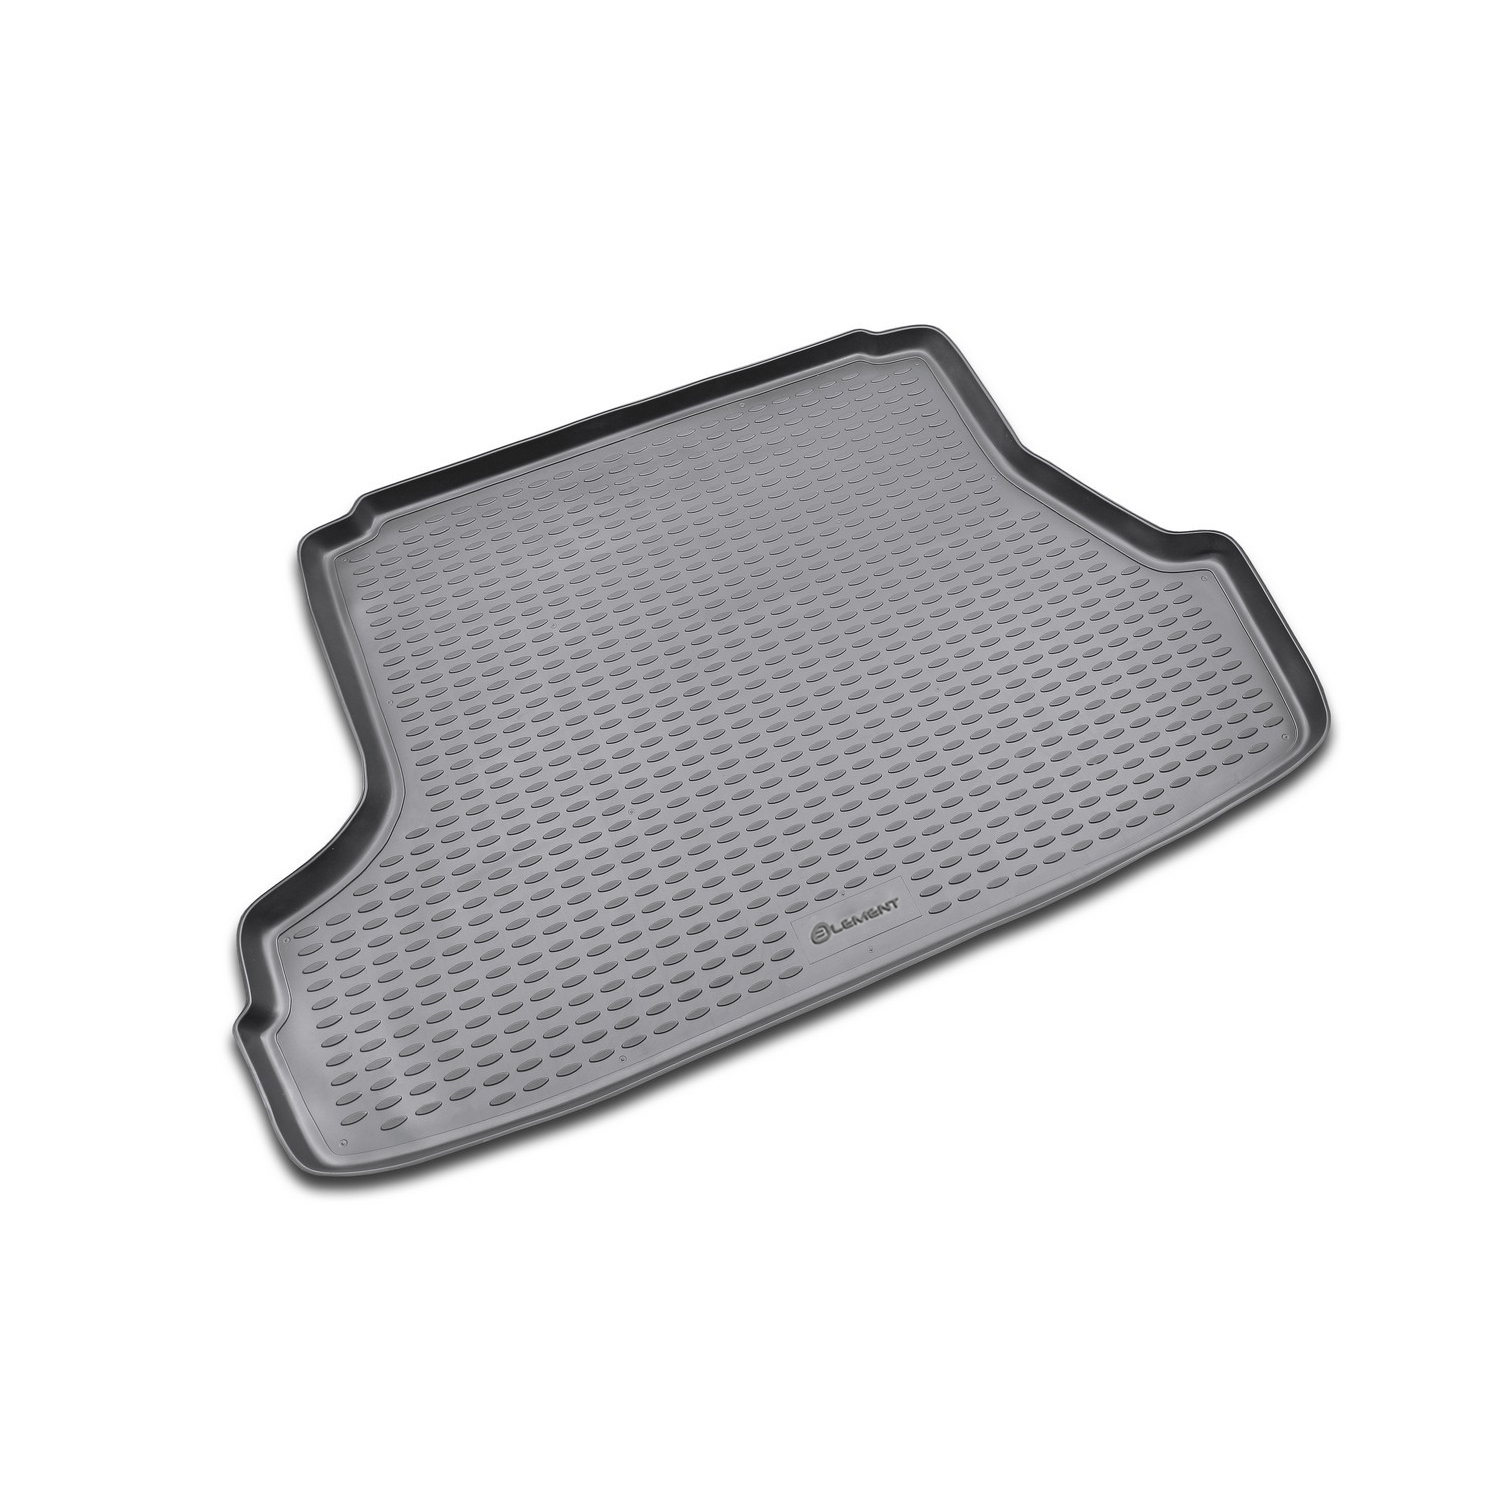 Trunk Mat For HYUNDAI Elantra 2001-2006, ETS. NLC.20.07.B10